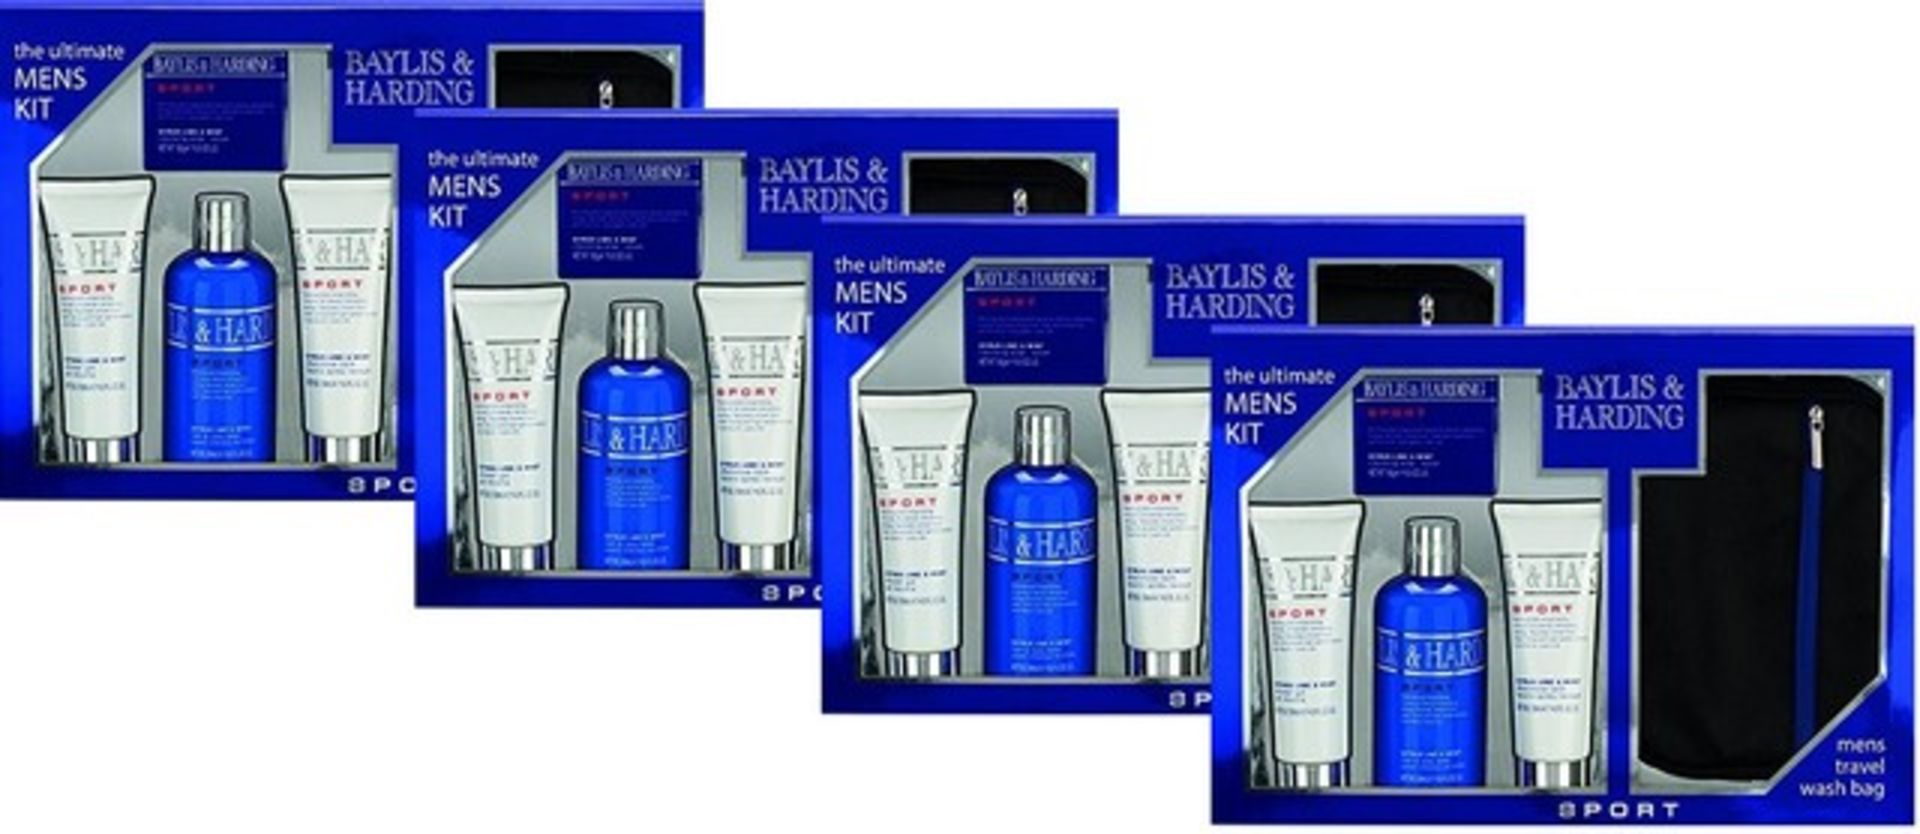 Lot 51515 - V Brand New Four Gift Sets - Baylis and Harding The Ultimate Men's Kit Including 1 x 300ml Hair